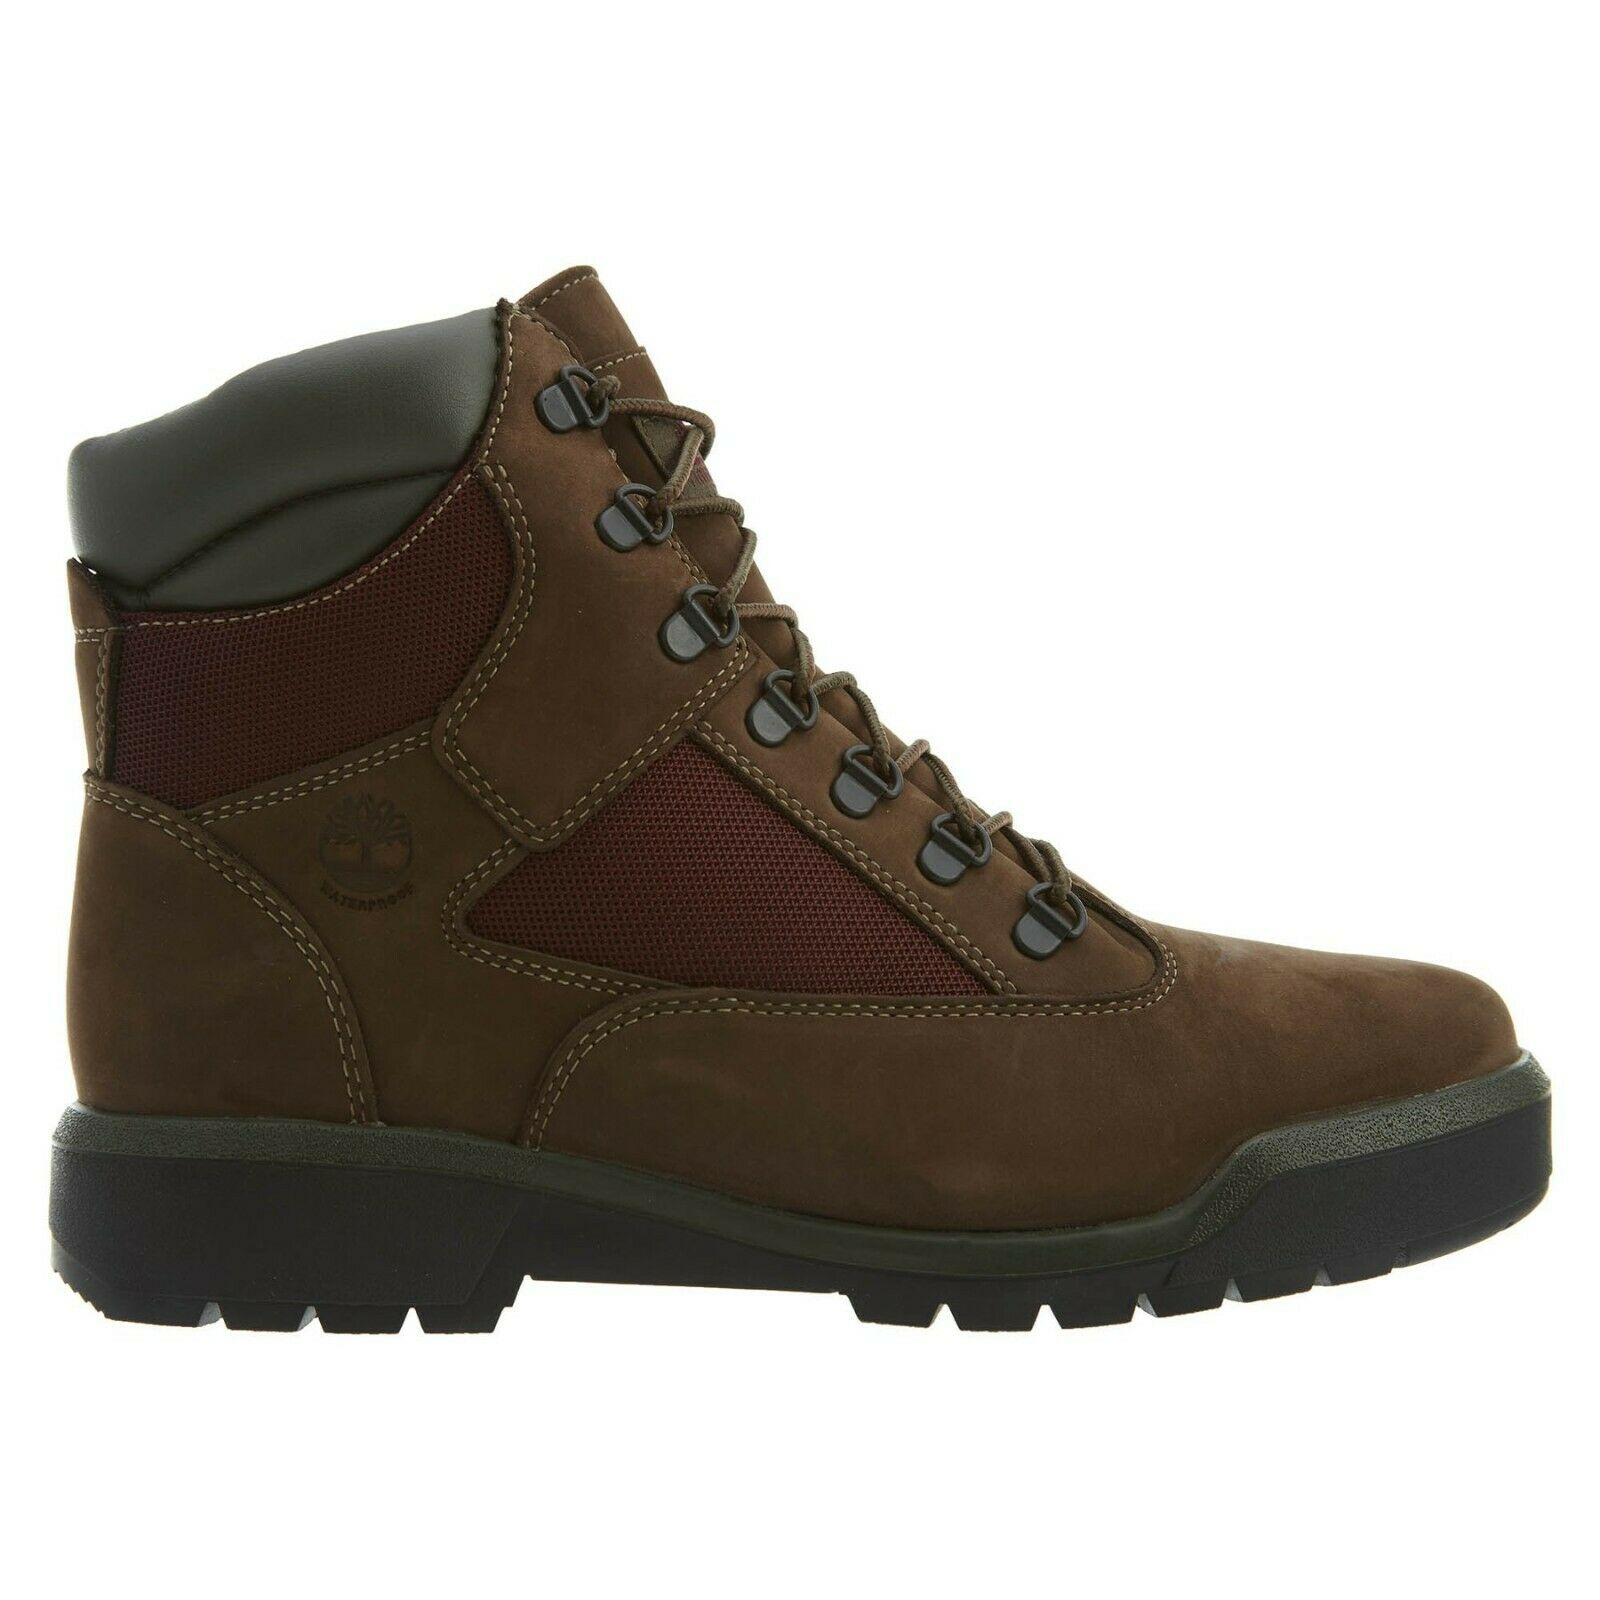 Timberland Men's 6 Inch FIELD Water Proof Boots Dark Brown A